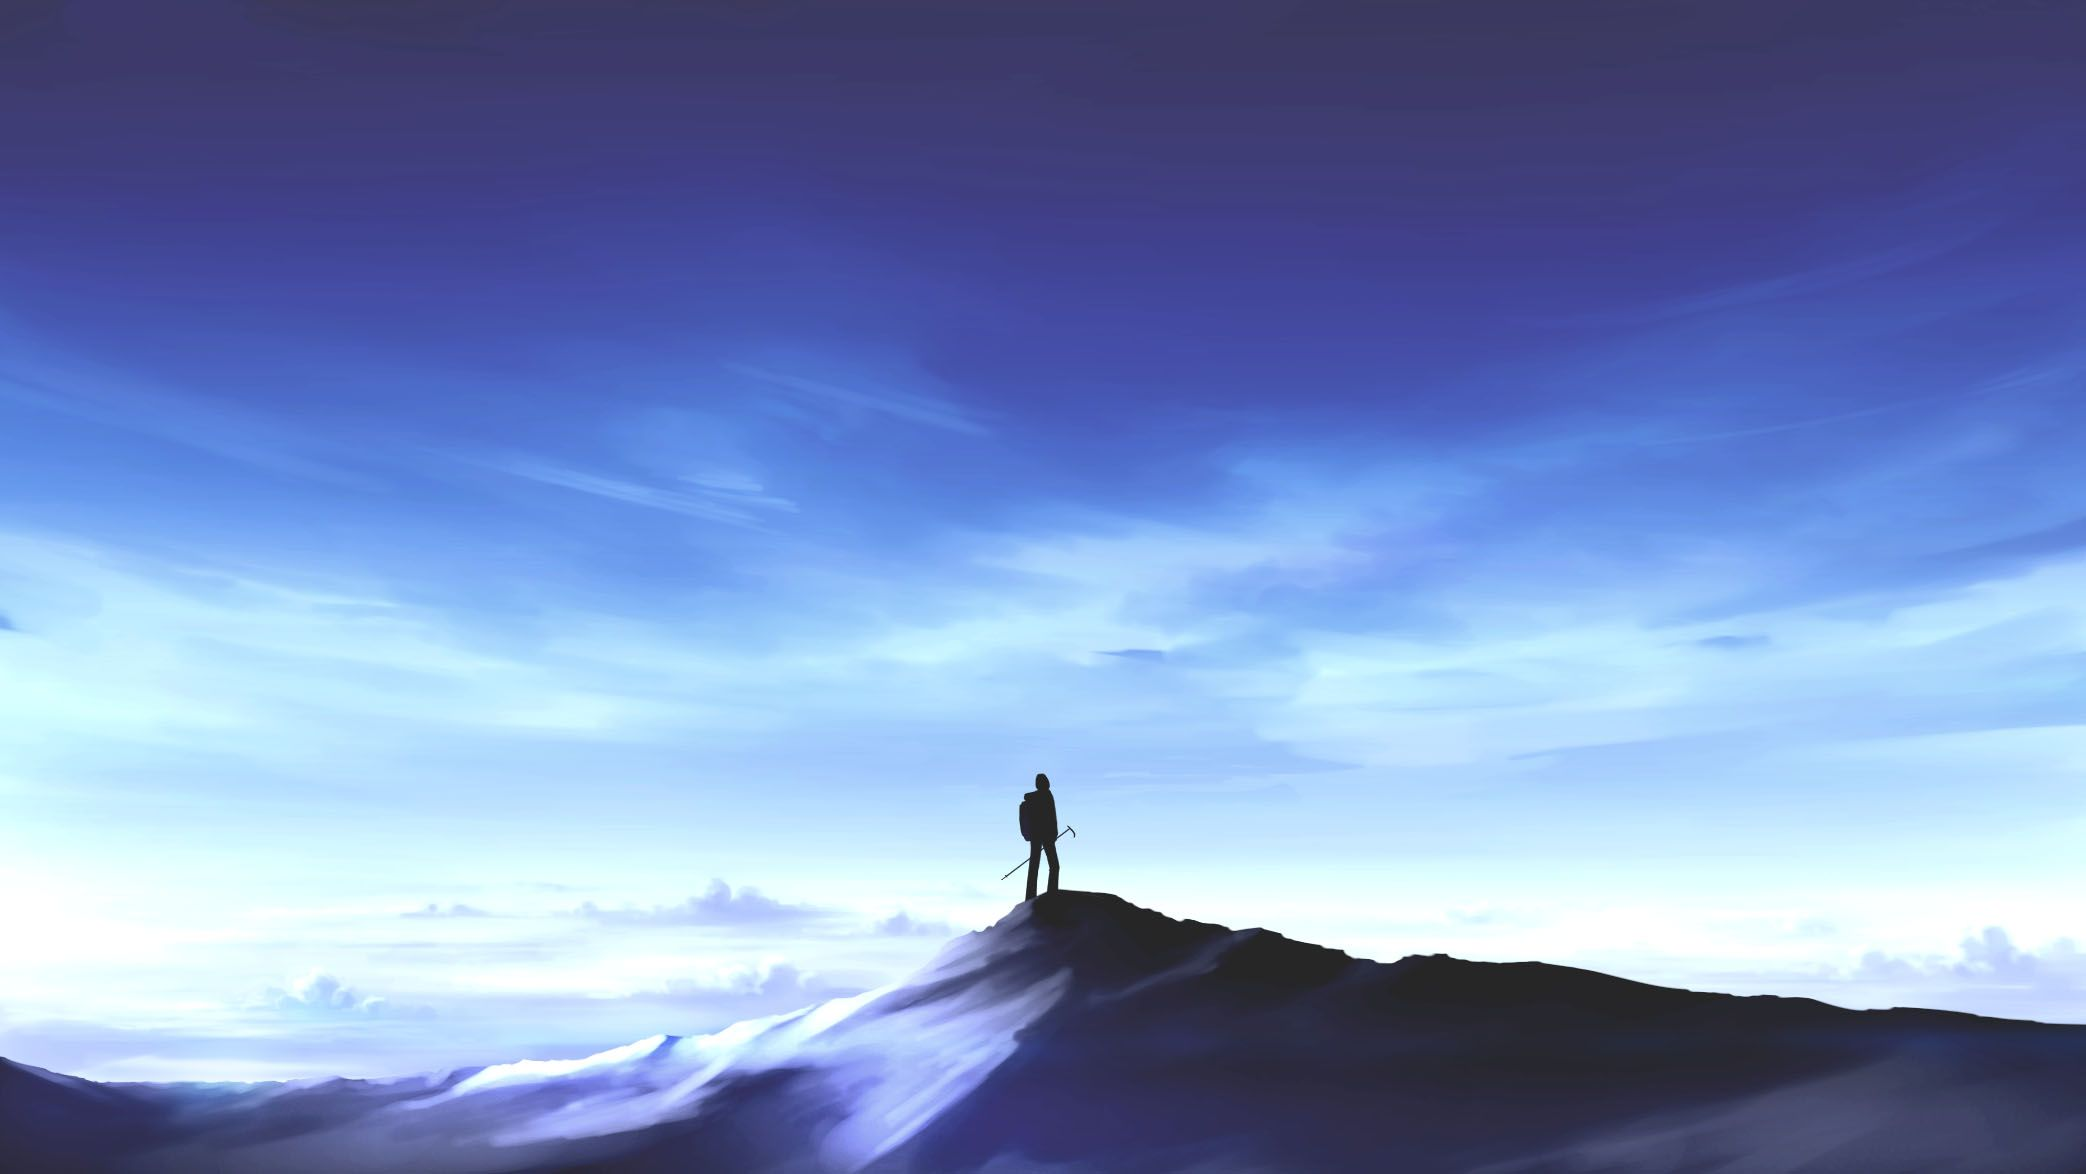 Anime Mountain Wallpapers Top Free Anime Mountain Backgrounds Wallpaperaccess